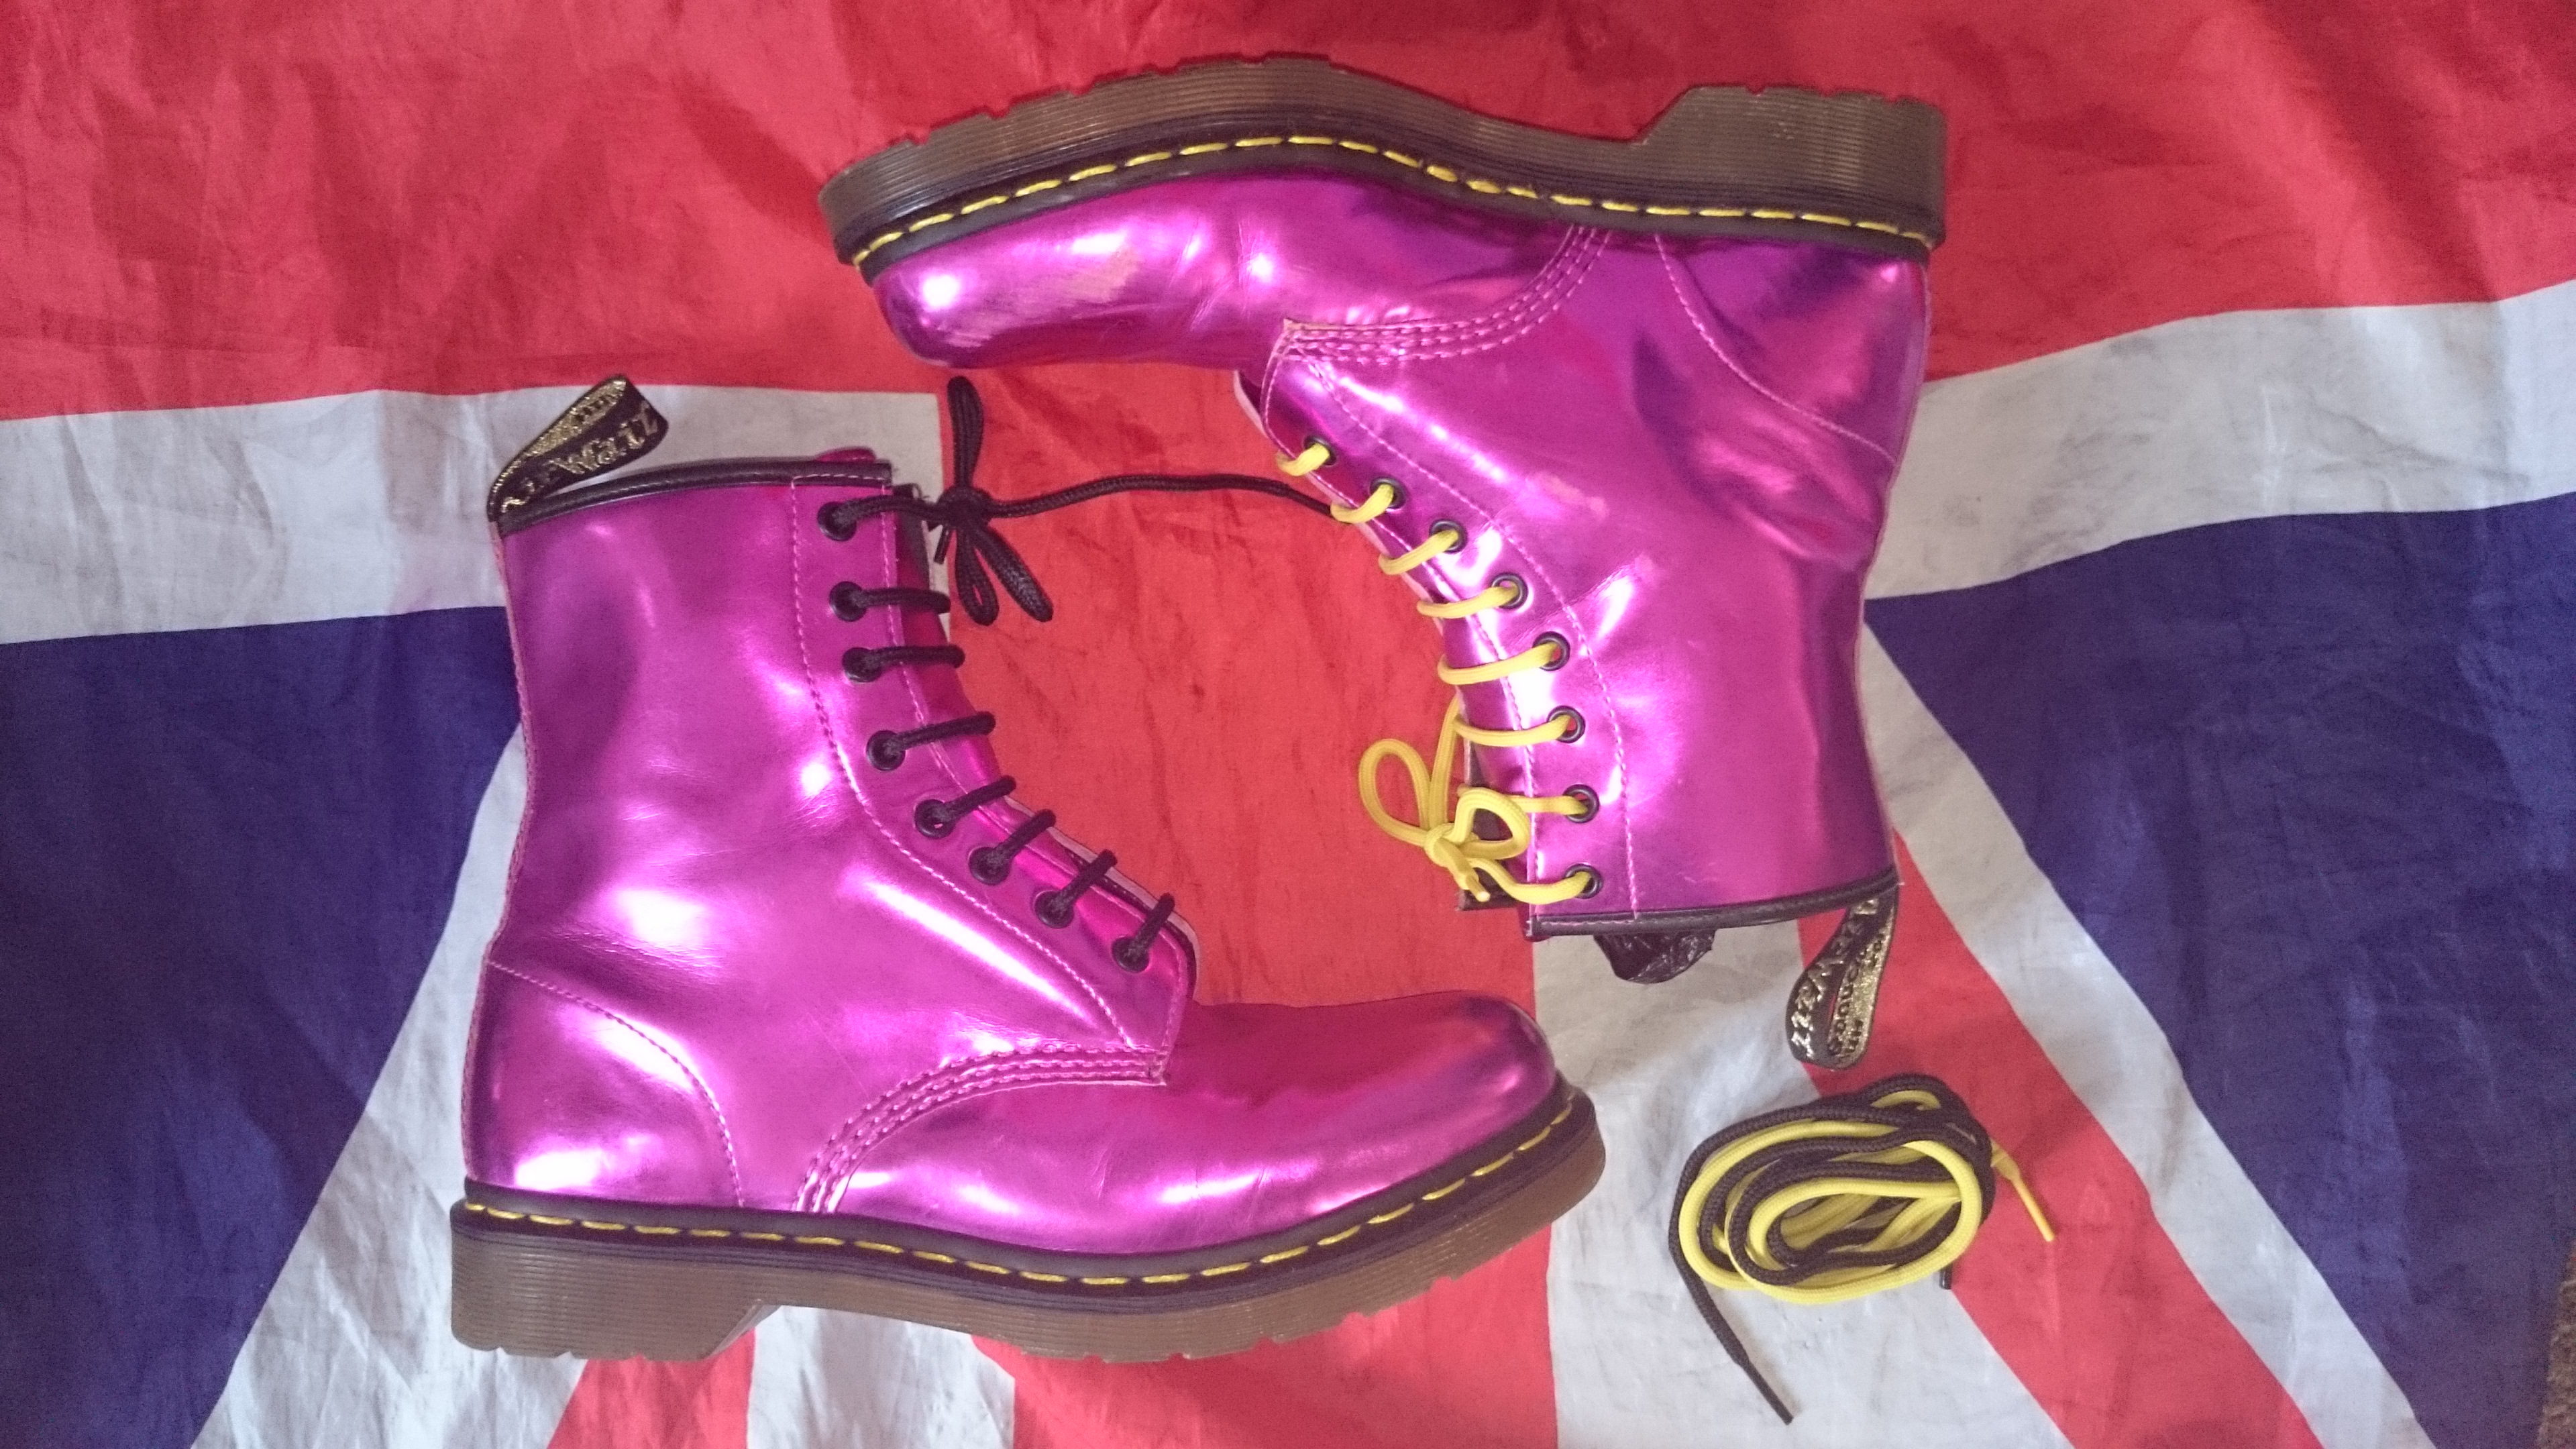 9660acc2c01e RARE Koram Flash Hot Metallic Pink Dr Doc Martens - UK 8*42 EU*USL ...